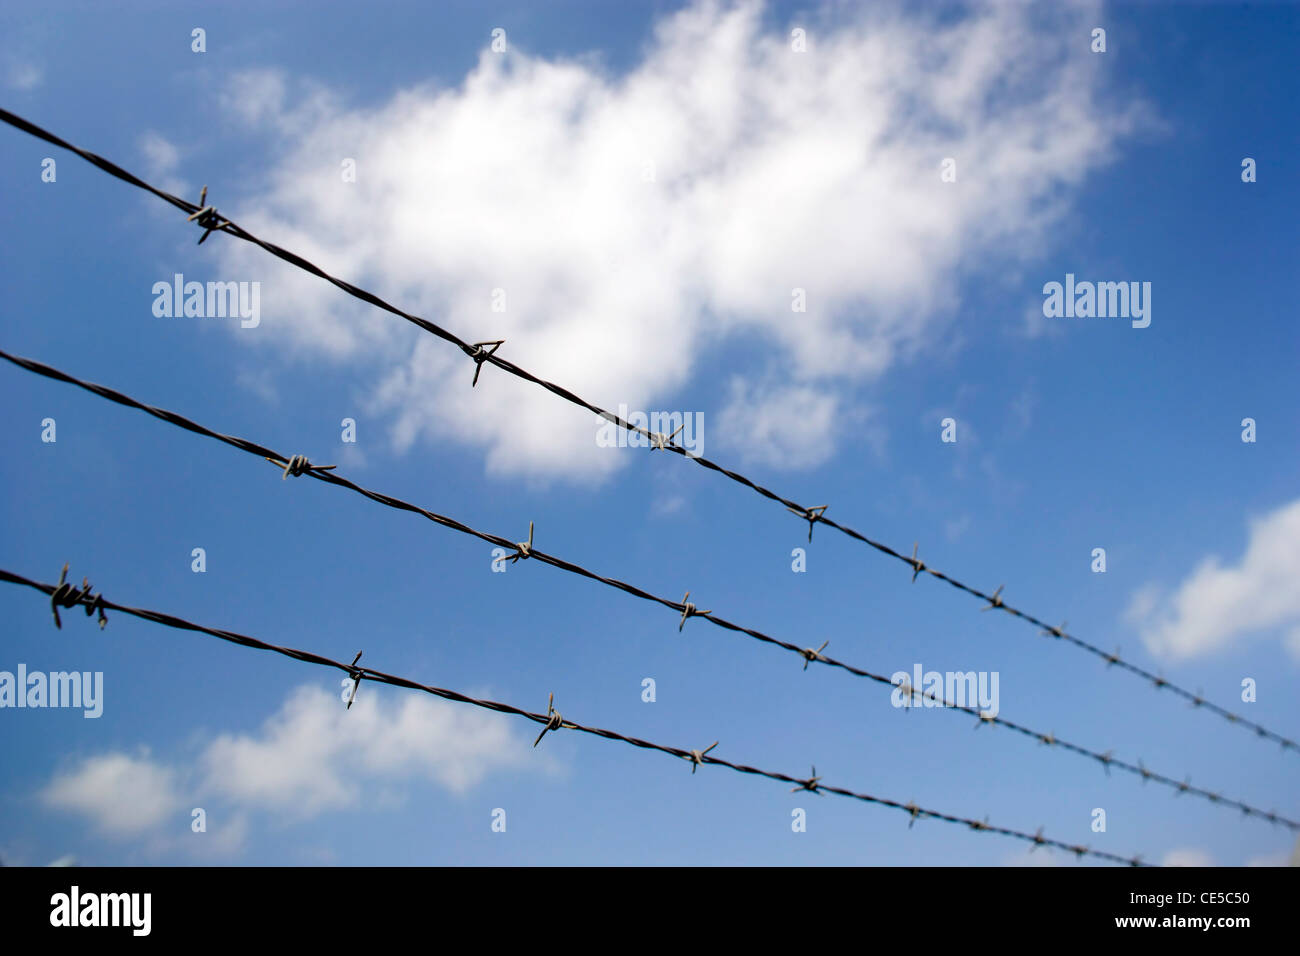 Barbed wire fence against a clear blue sky - Stock Image